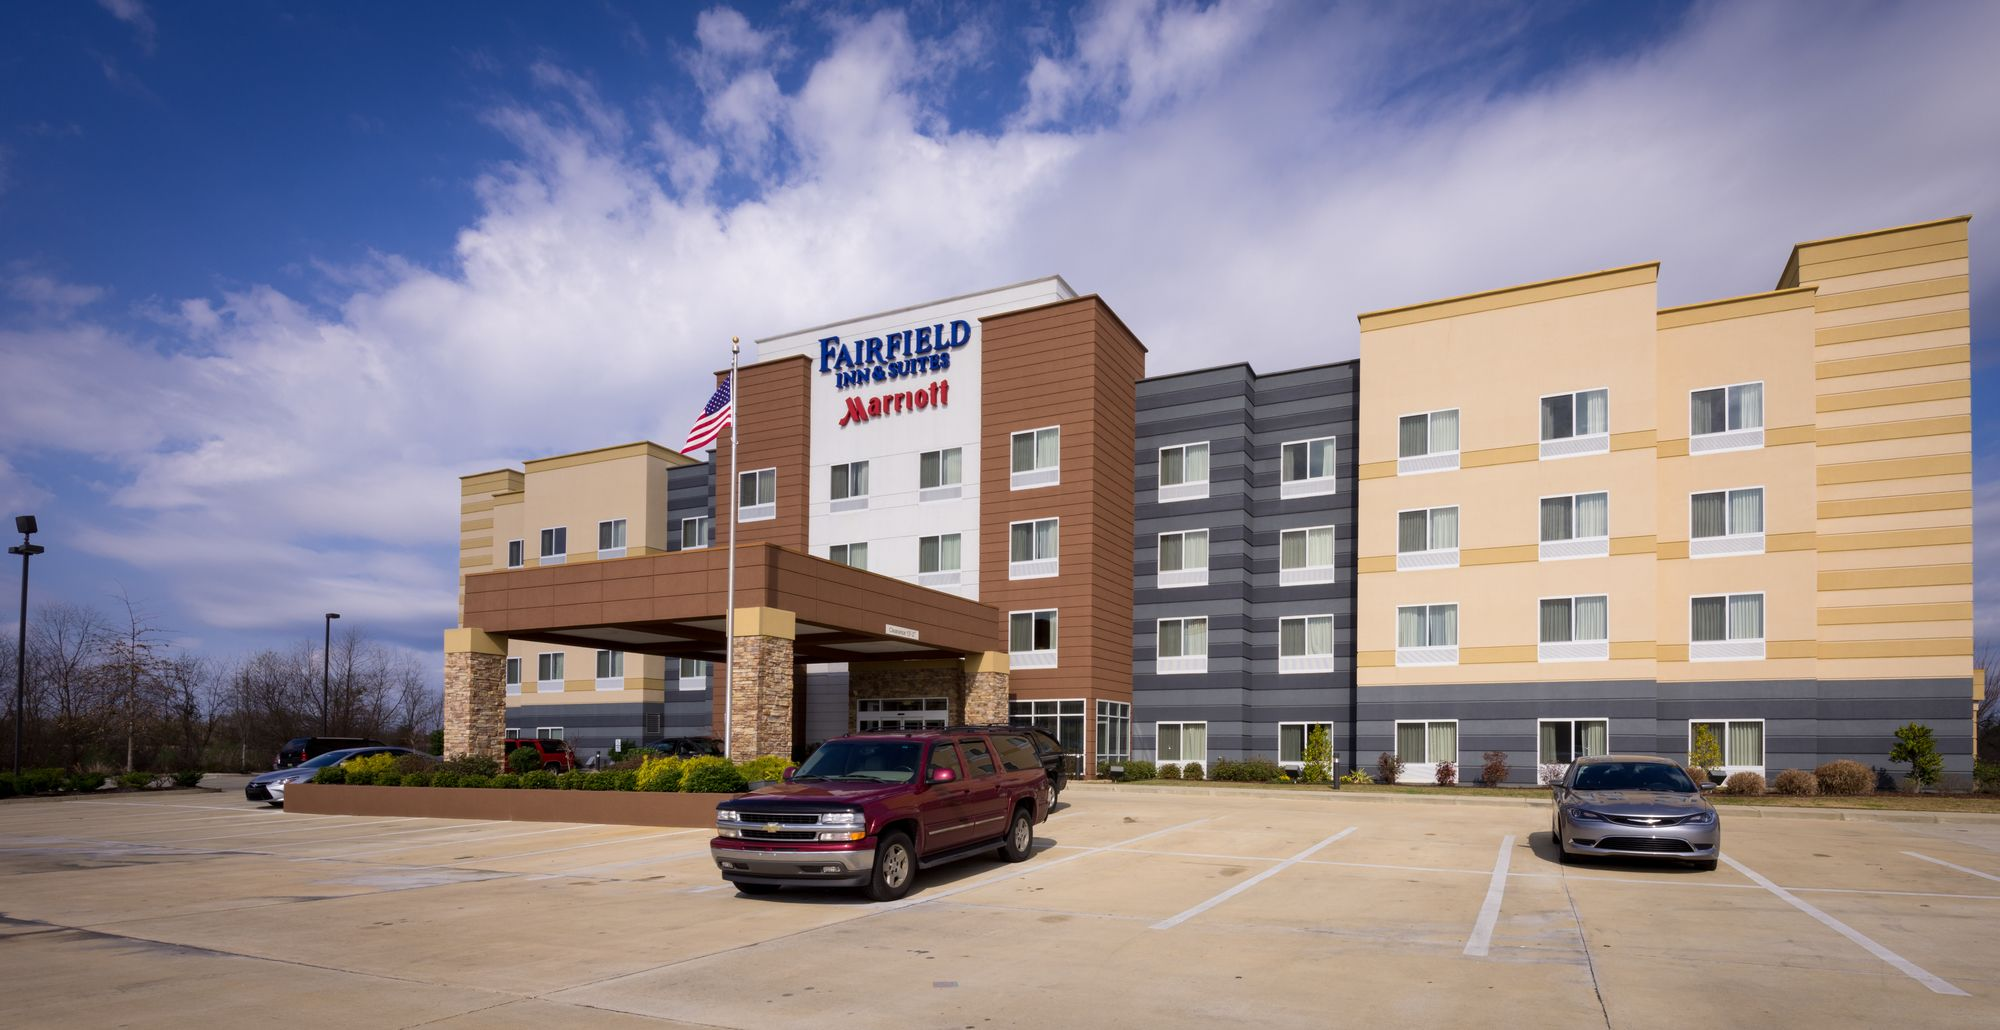 Fairfield Inn & Suites by Marriott Montgomery Airport South in Hope Hull, AL